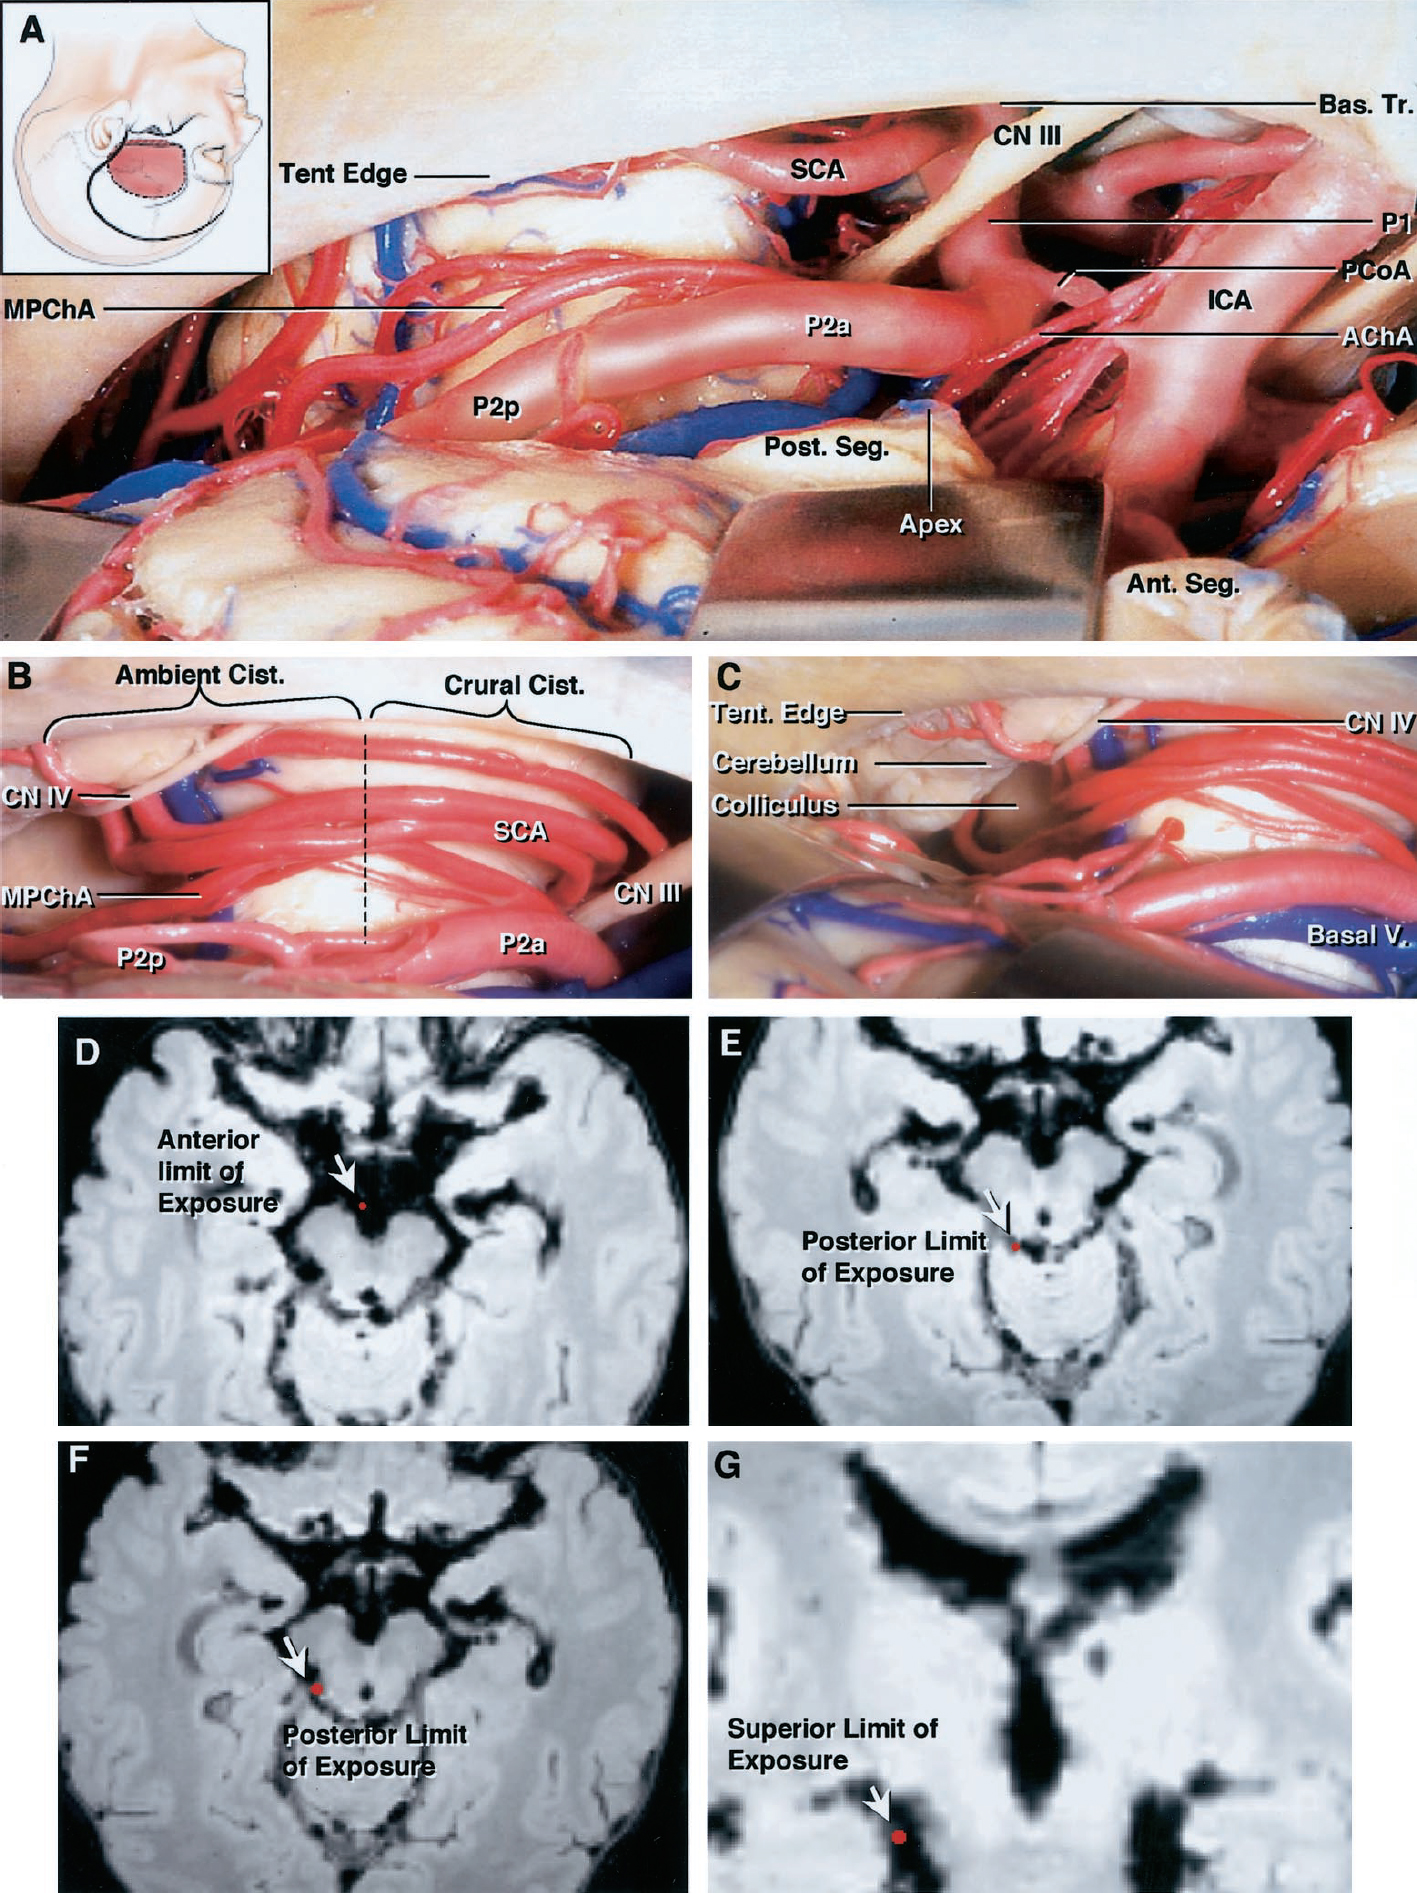 Figure 3. A–C, left subtemporal approach to the perimesencephalic cisterns. A, specimen showing anterior subtemporal approach exposing the interpeduncular and lower half of the crural and ambient cisterns. Structures exposed include the internal carotid, anterior choroidal, posterior communicating, basilar, superior cerebellar and medial posterior choroidal arteries, P1 and P2a, and anterior and posterior segments and apex of the uncus. B, specimen showing middle subtemporal approach exposing the P2a within the crural cistern, P2p within the ambient cistern, medial posterior choroidal and superior cerebellar arteries, trochlear nerve, and tentorial edge. C, specimen showing posterior subtemporal exposure with view into anterior quadrigeminal cistern exposing the collicular plate, trochlear nerve, and basal vein. D–G, Stealth magnetic resonance imaging scans demonstrating the limits (arrows) of the approach. D, left anterior subtemporal exposure provides access to the interpeduncular cistern and across to the medial aspect of the contralateral cerebral peduncle. E, posterior limit of exposure in hemispheres not limited by an anterior position of the vein of Labbé was the lateral part of the quadrigeminal cistern on the side ipsilateral to the approach. F, posterior limit of exposure ipsilateral to the approach in hemispheres in which an anterior position of the vein of Labbé limits temporal lobe retraction. G, superior limit of exposure within the ambient cistern was limited to the lower one-half to two-thirds of the cistern because of the prominence of the medial edge of the parahippocampal gyrus. Reaching the upper part of the cistern would require excessive temporal lobe retraction. AChA, anterior choroidal artery; Ambient, ambient cistern; Ant. Seg., anterior segment of uncus; Apex, apex of uncus; Bas. Tr., basilar trunk; Basal V., basal vein of Rosenthal; CN III, oculomotor nerve; CN IV, trochlear nerve; Crural, crural cistern; ICA, internal carotid artery; SCA, superior cerebellar artery; Tent edge, tentorial edge; MPChA, medial posterior choroidal artery; PCoA, posterior communicating artery; Post. Seg., posterior segment of the uncus. (Images courtesy of AL Rhoton, Jr.)